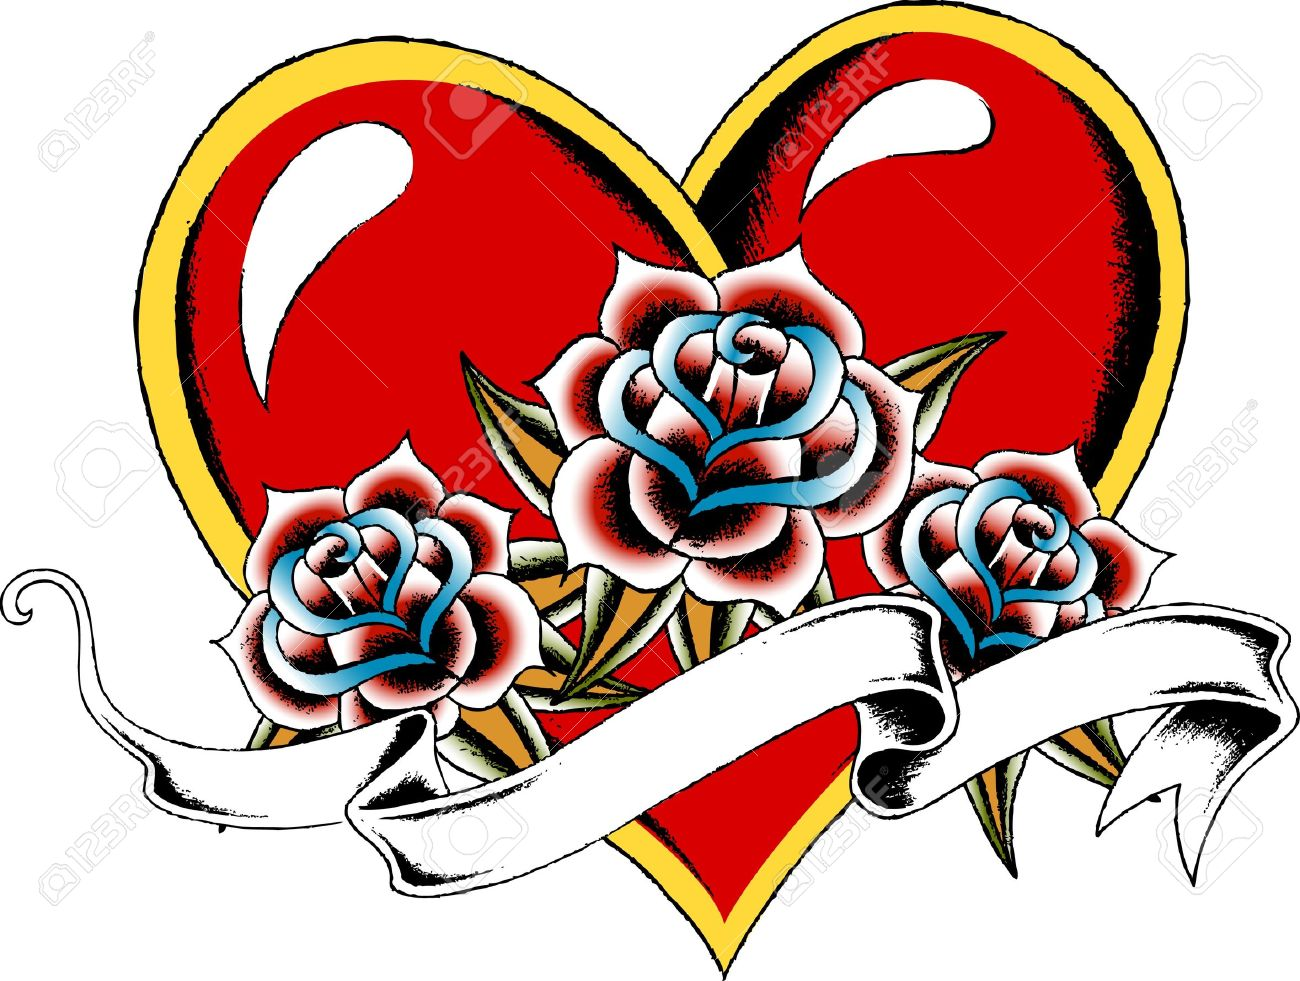 1300x981 Image Result For Ribbon Tattoos More Tattoos Amp Tattoo Designs